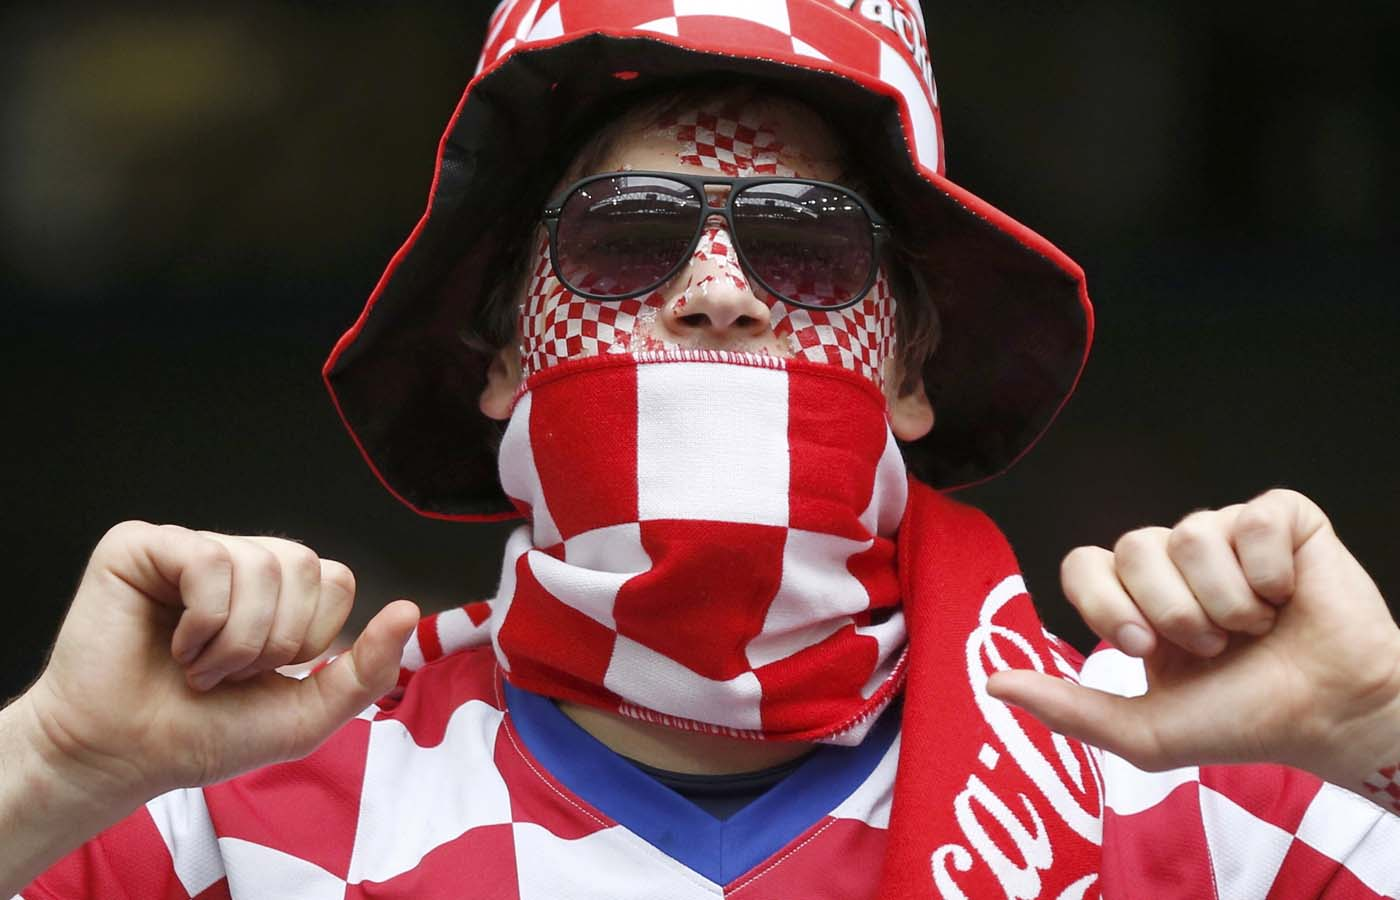 A Croatian supporter cheers before their Group C Euro 2012 soccer match against Italy at the city stadium in Poznan, June 14, 2012. (Petr Josek/Reuters)